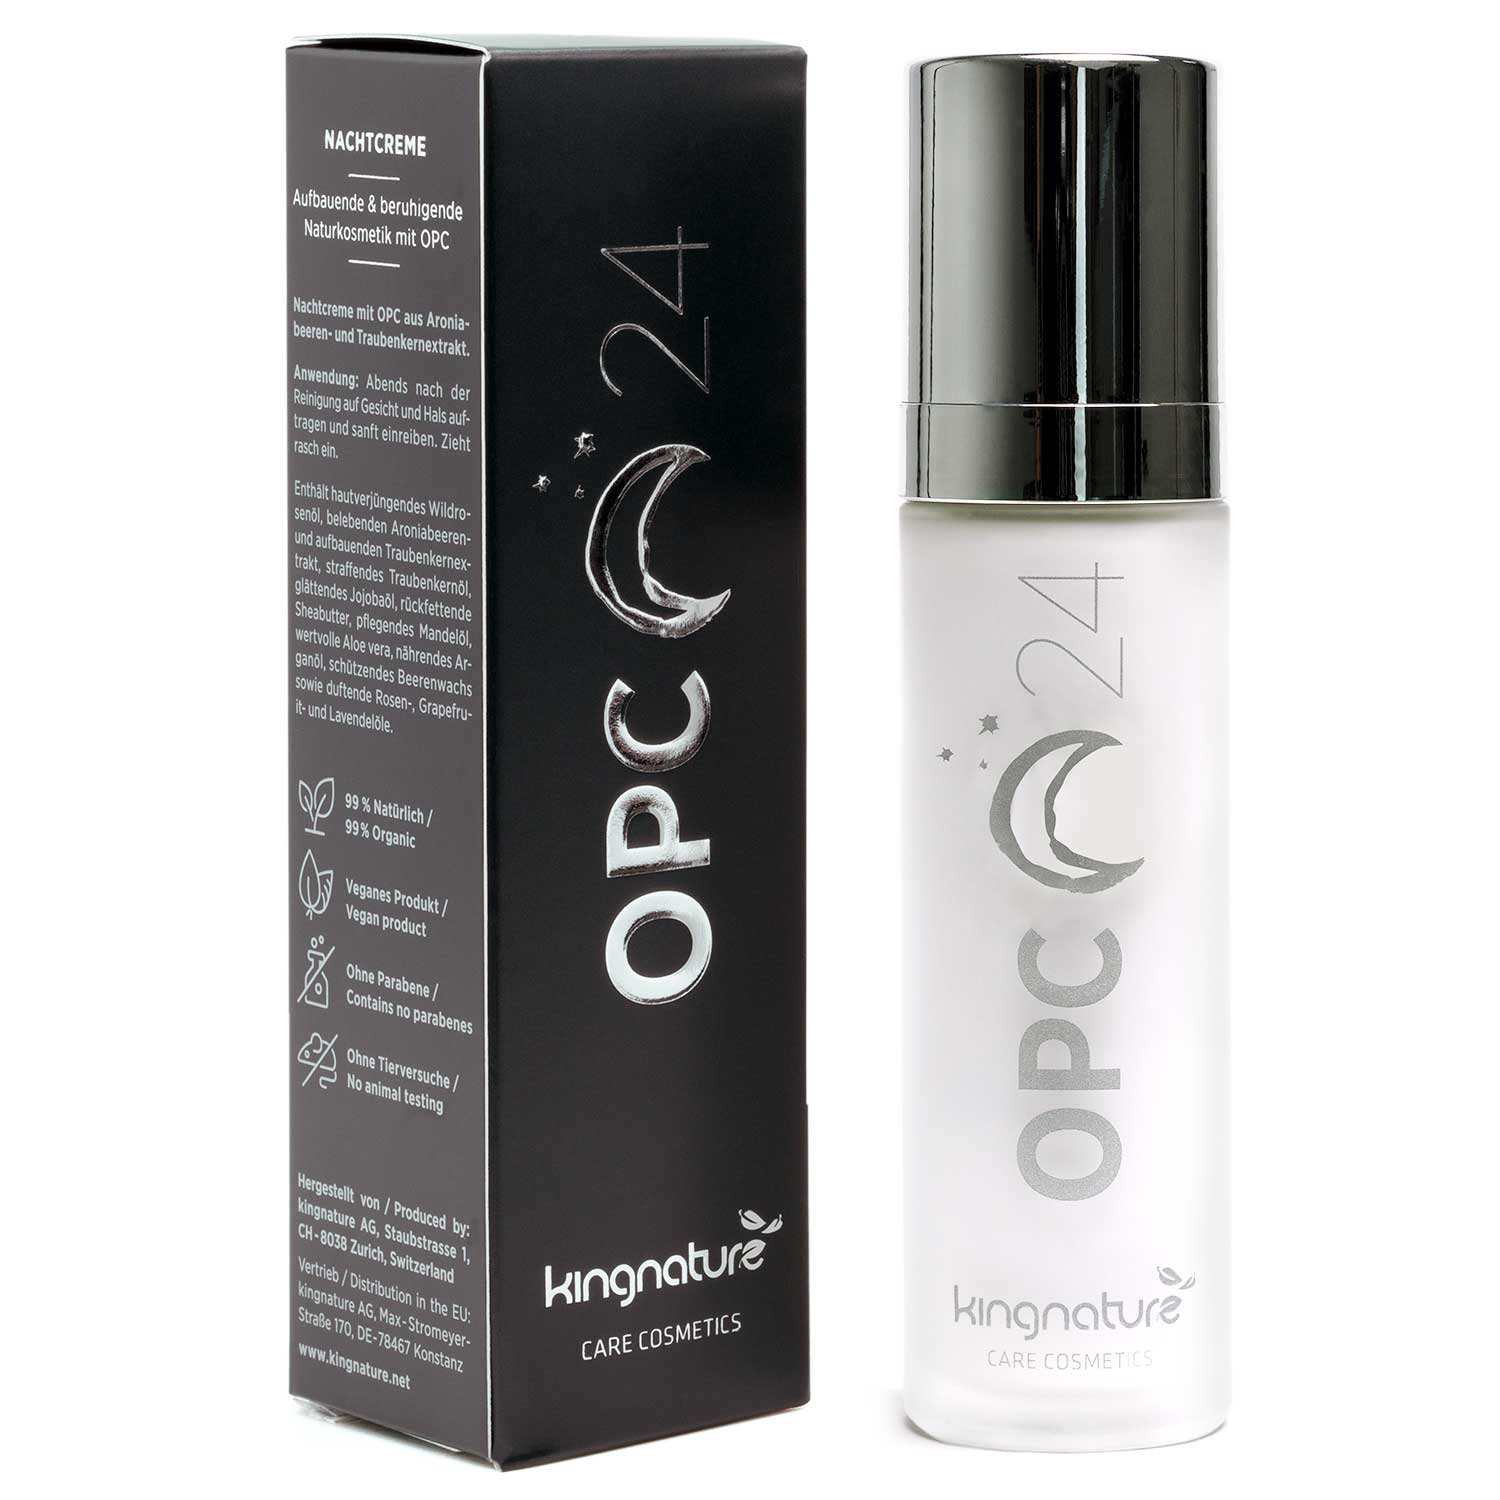 Buy OPC 24 Night Cream: Natural Cosmetics for your skin